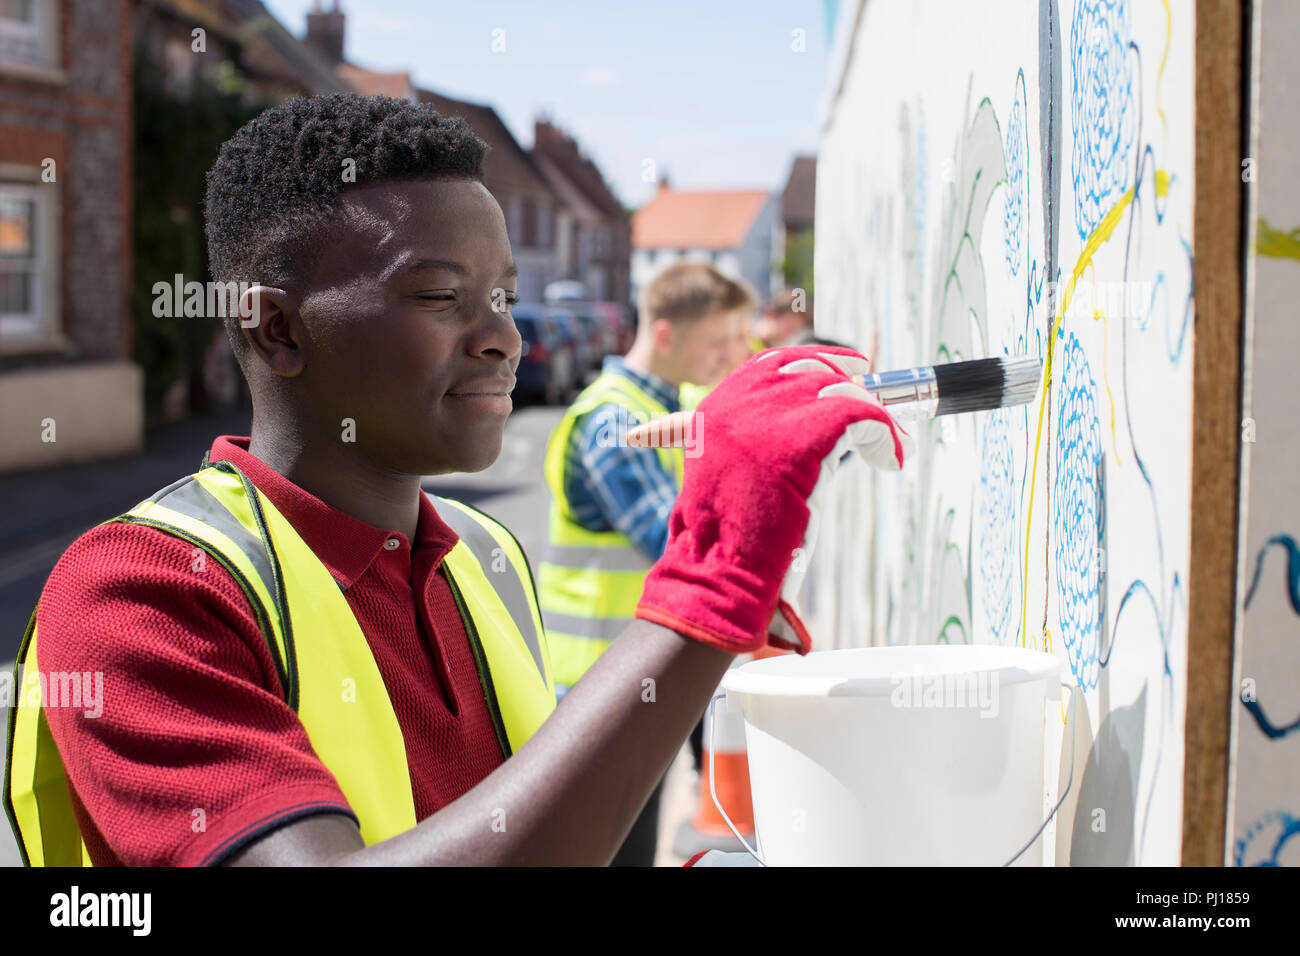 Group Of Helpful Teenagers Creating And Maintaining Community Art Project Stock Photo